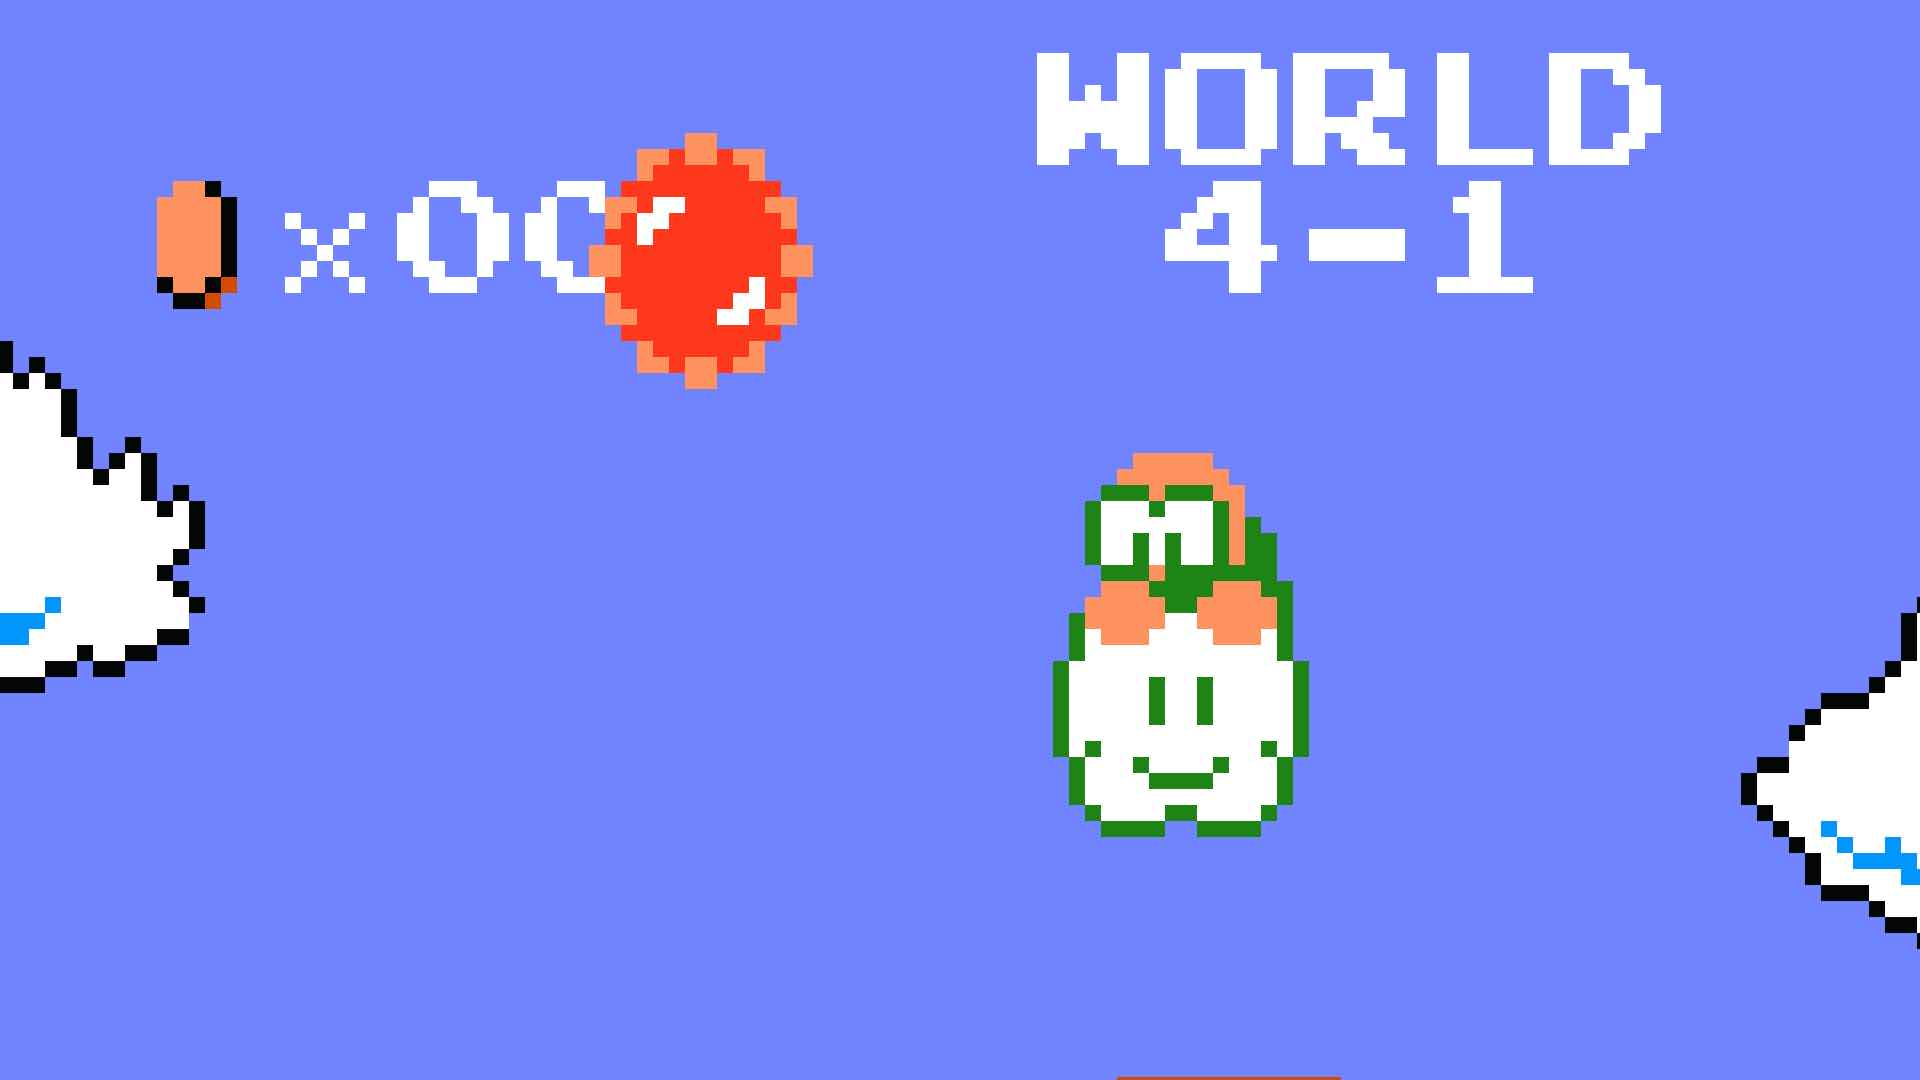 Bug In Super Mario Bros Nes Discovered Patched Retrorgb